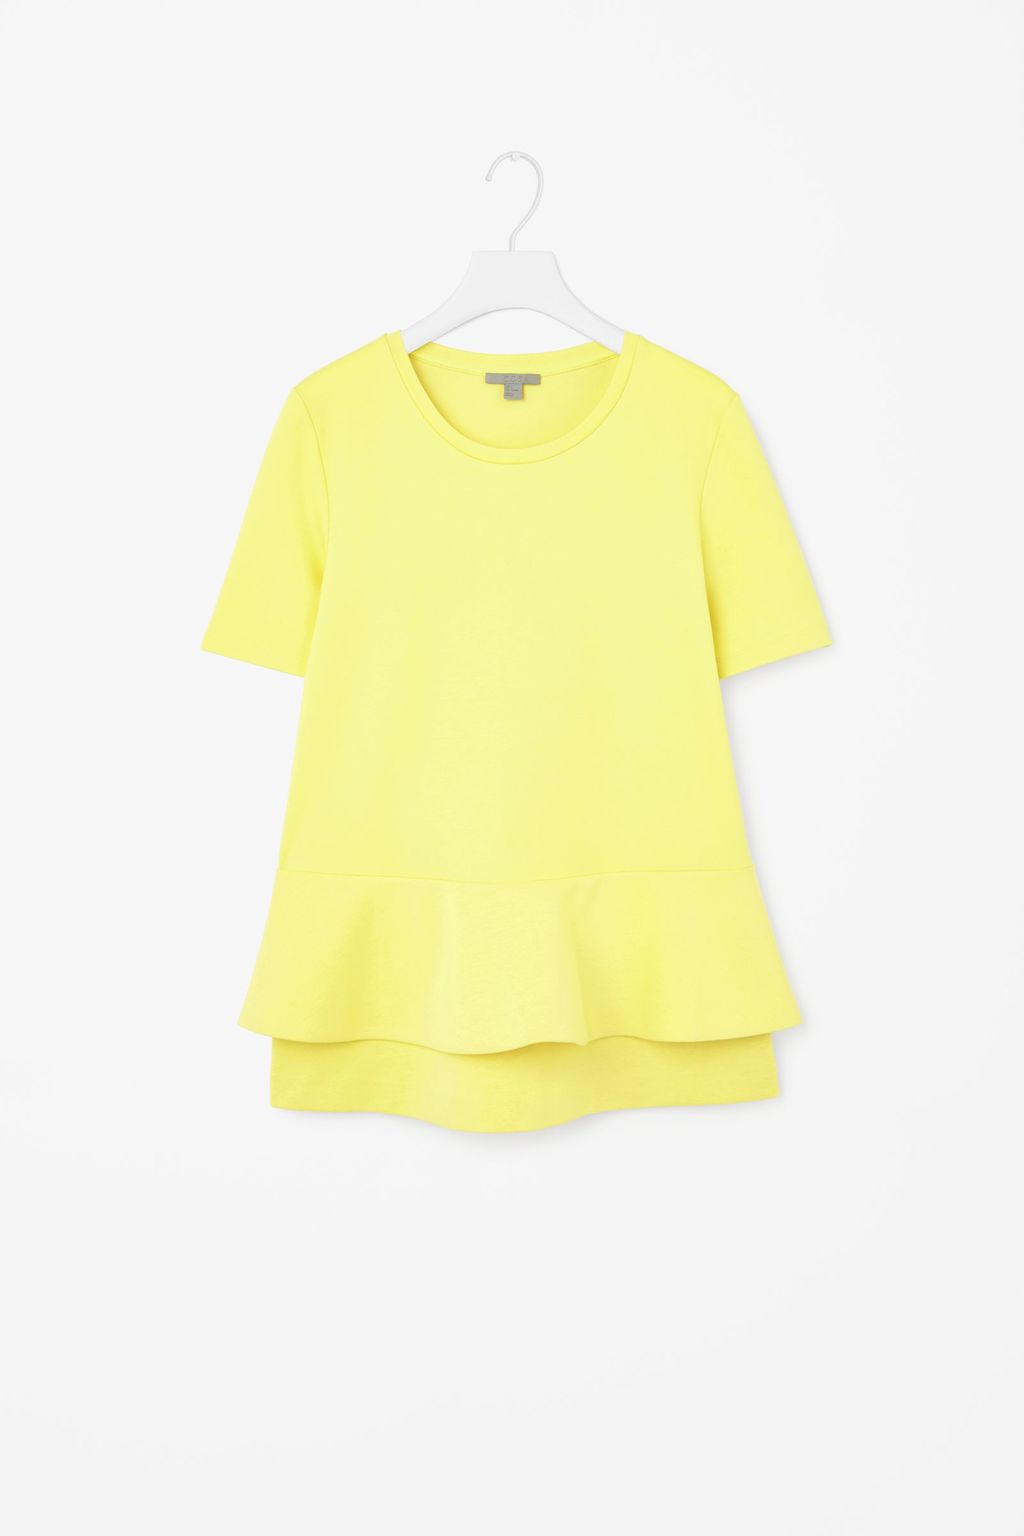 Top With Flared Layer - pattern: plain; predominant colour: yellow; occasions: casual; length: standard; style: top; fibres: viscose/rayon - stretch; fit: body skimming; neckline: crew; sleeve length: short sleeve; sleeve style: standard; pattern type: fabric; texture group: jersey - stretchy/drapey; season: s/s 2015; wardrobe: highlight